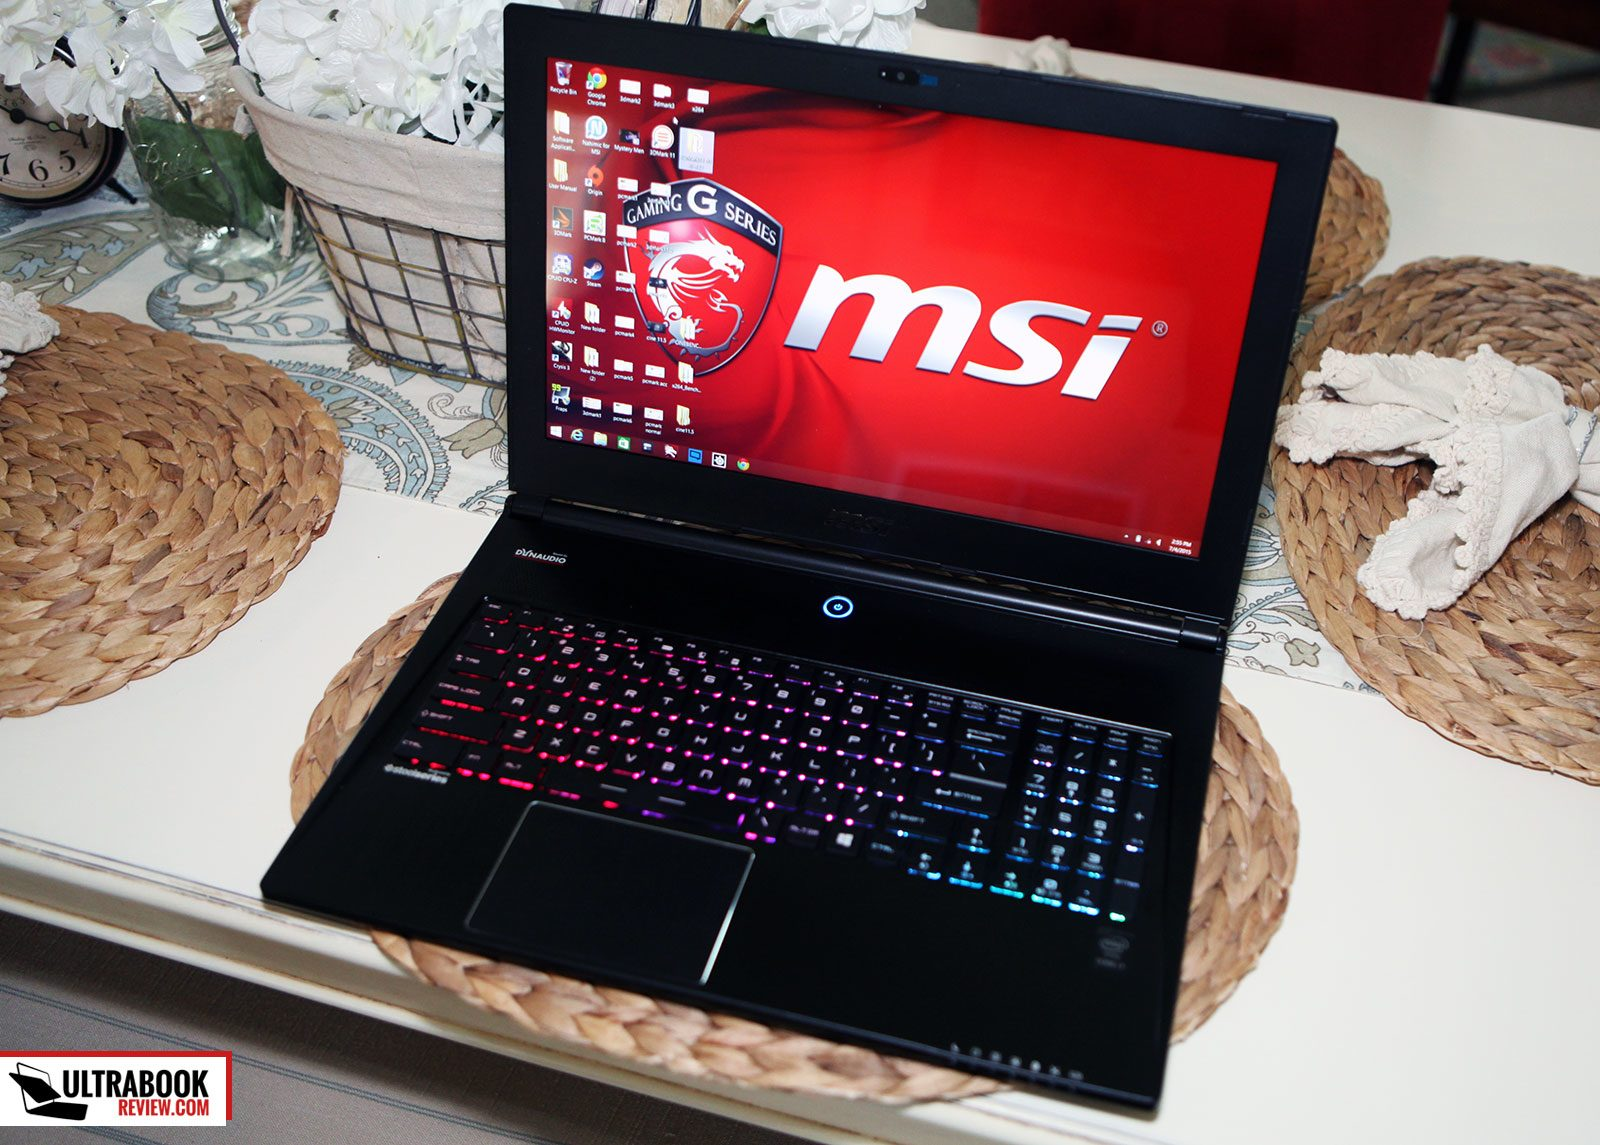 I'm sticking with the MSI GS60 for now, but if you want the more powerful graphics and simpler design and you're willing to look past a few quirks, the Gigabyte P35X is an option to consider